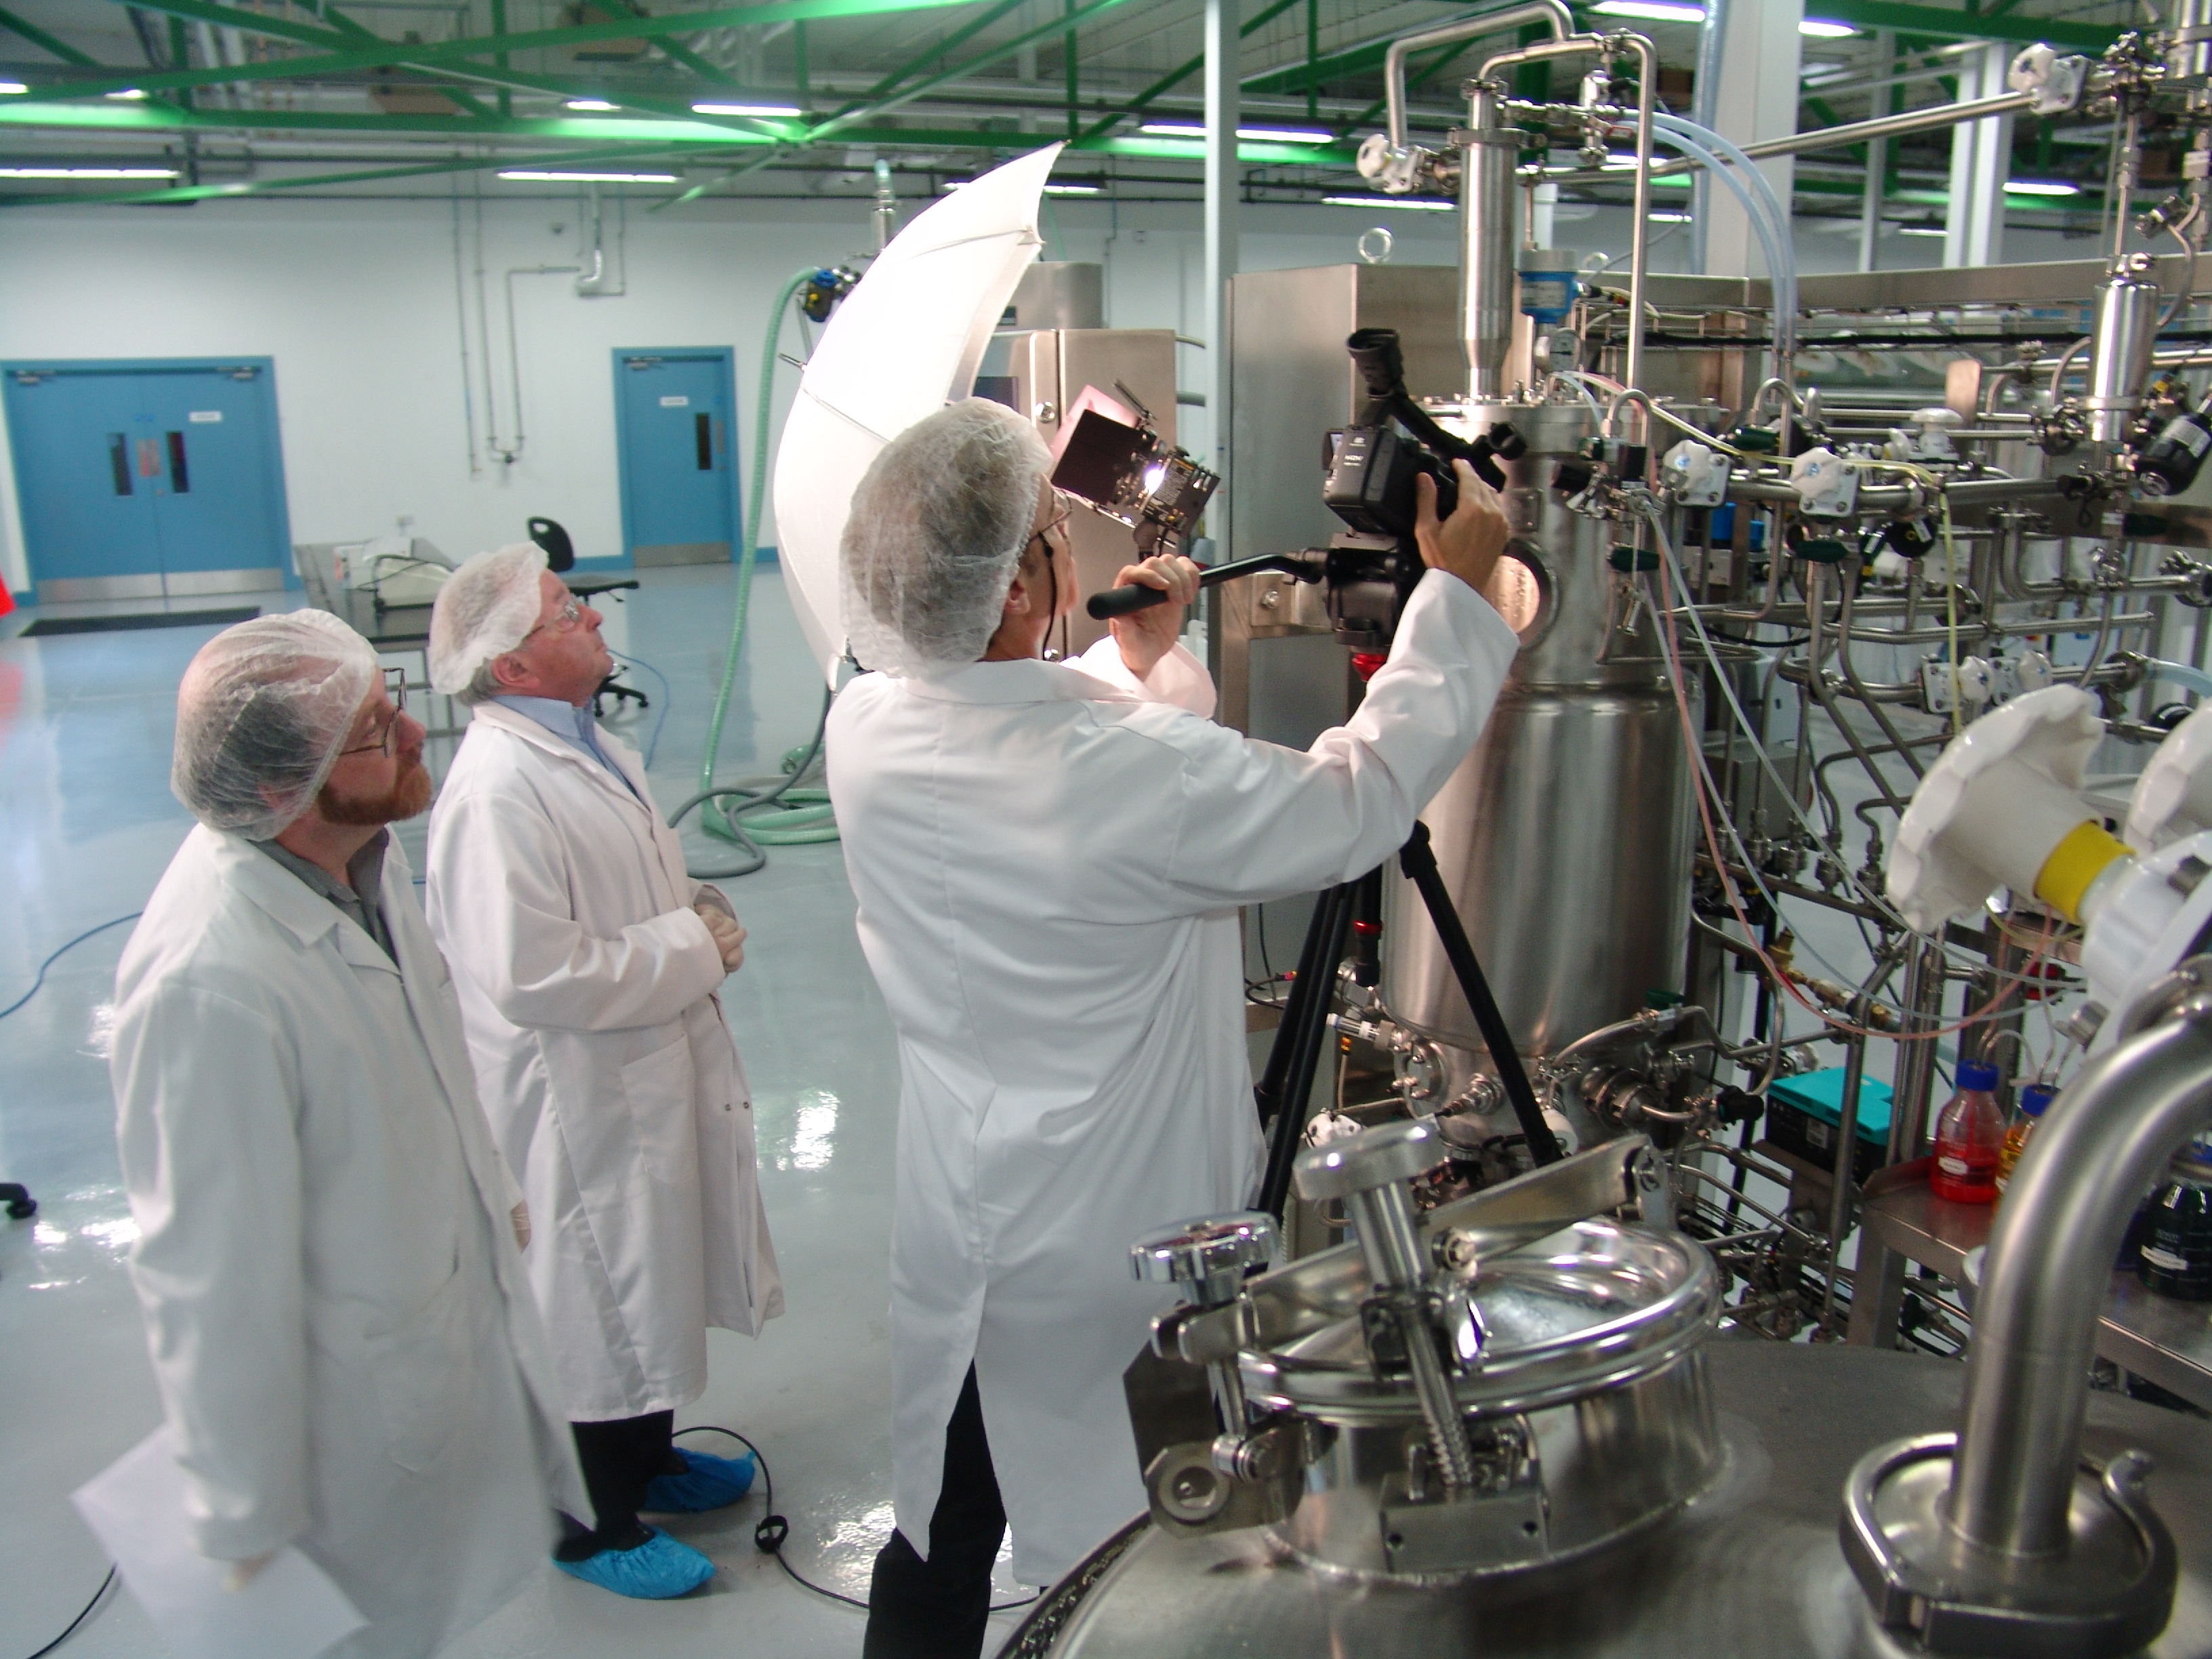 Filming of Production Bioreactor Operation at FAS Biopharmaceutical Training Center in Carrigaline, Ireland